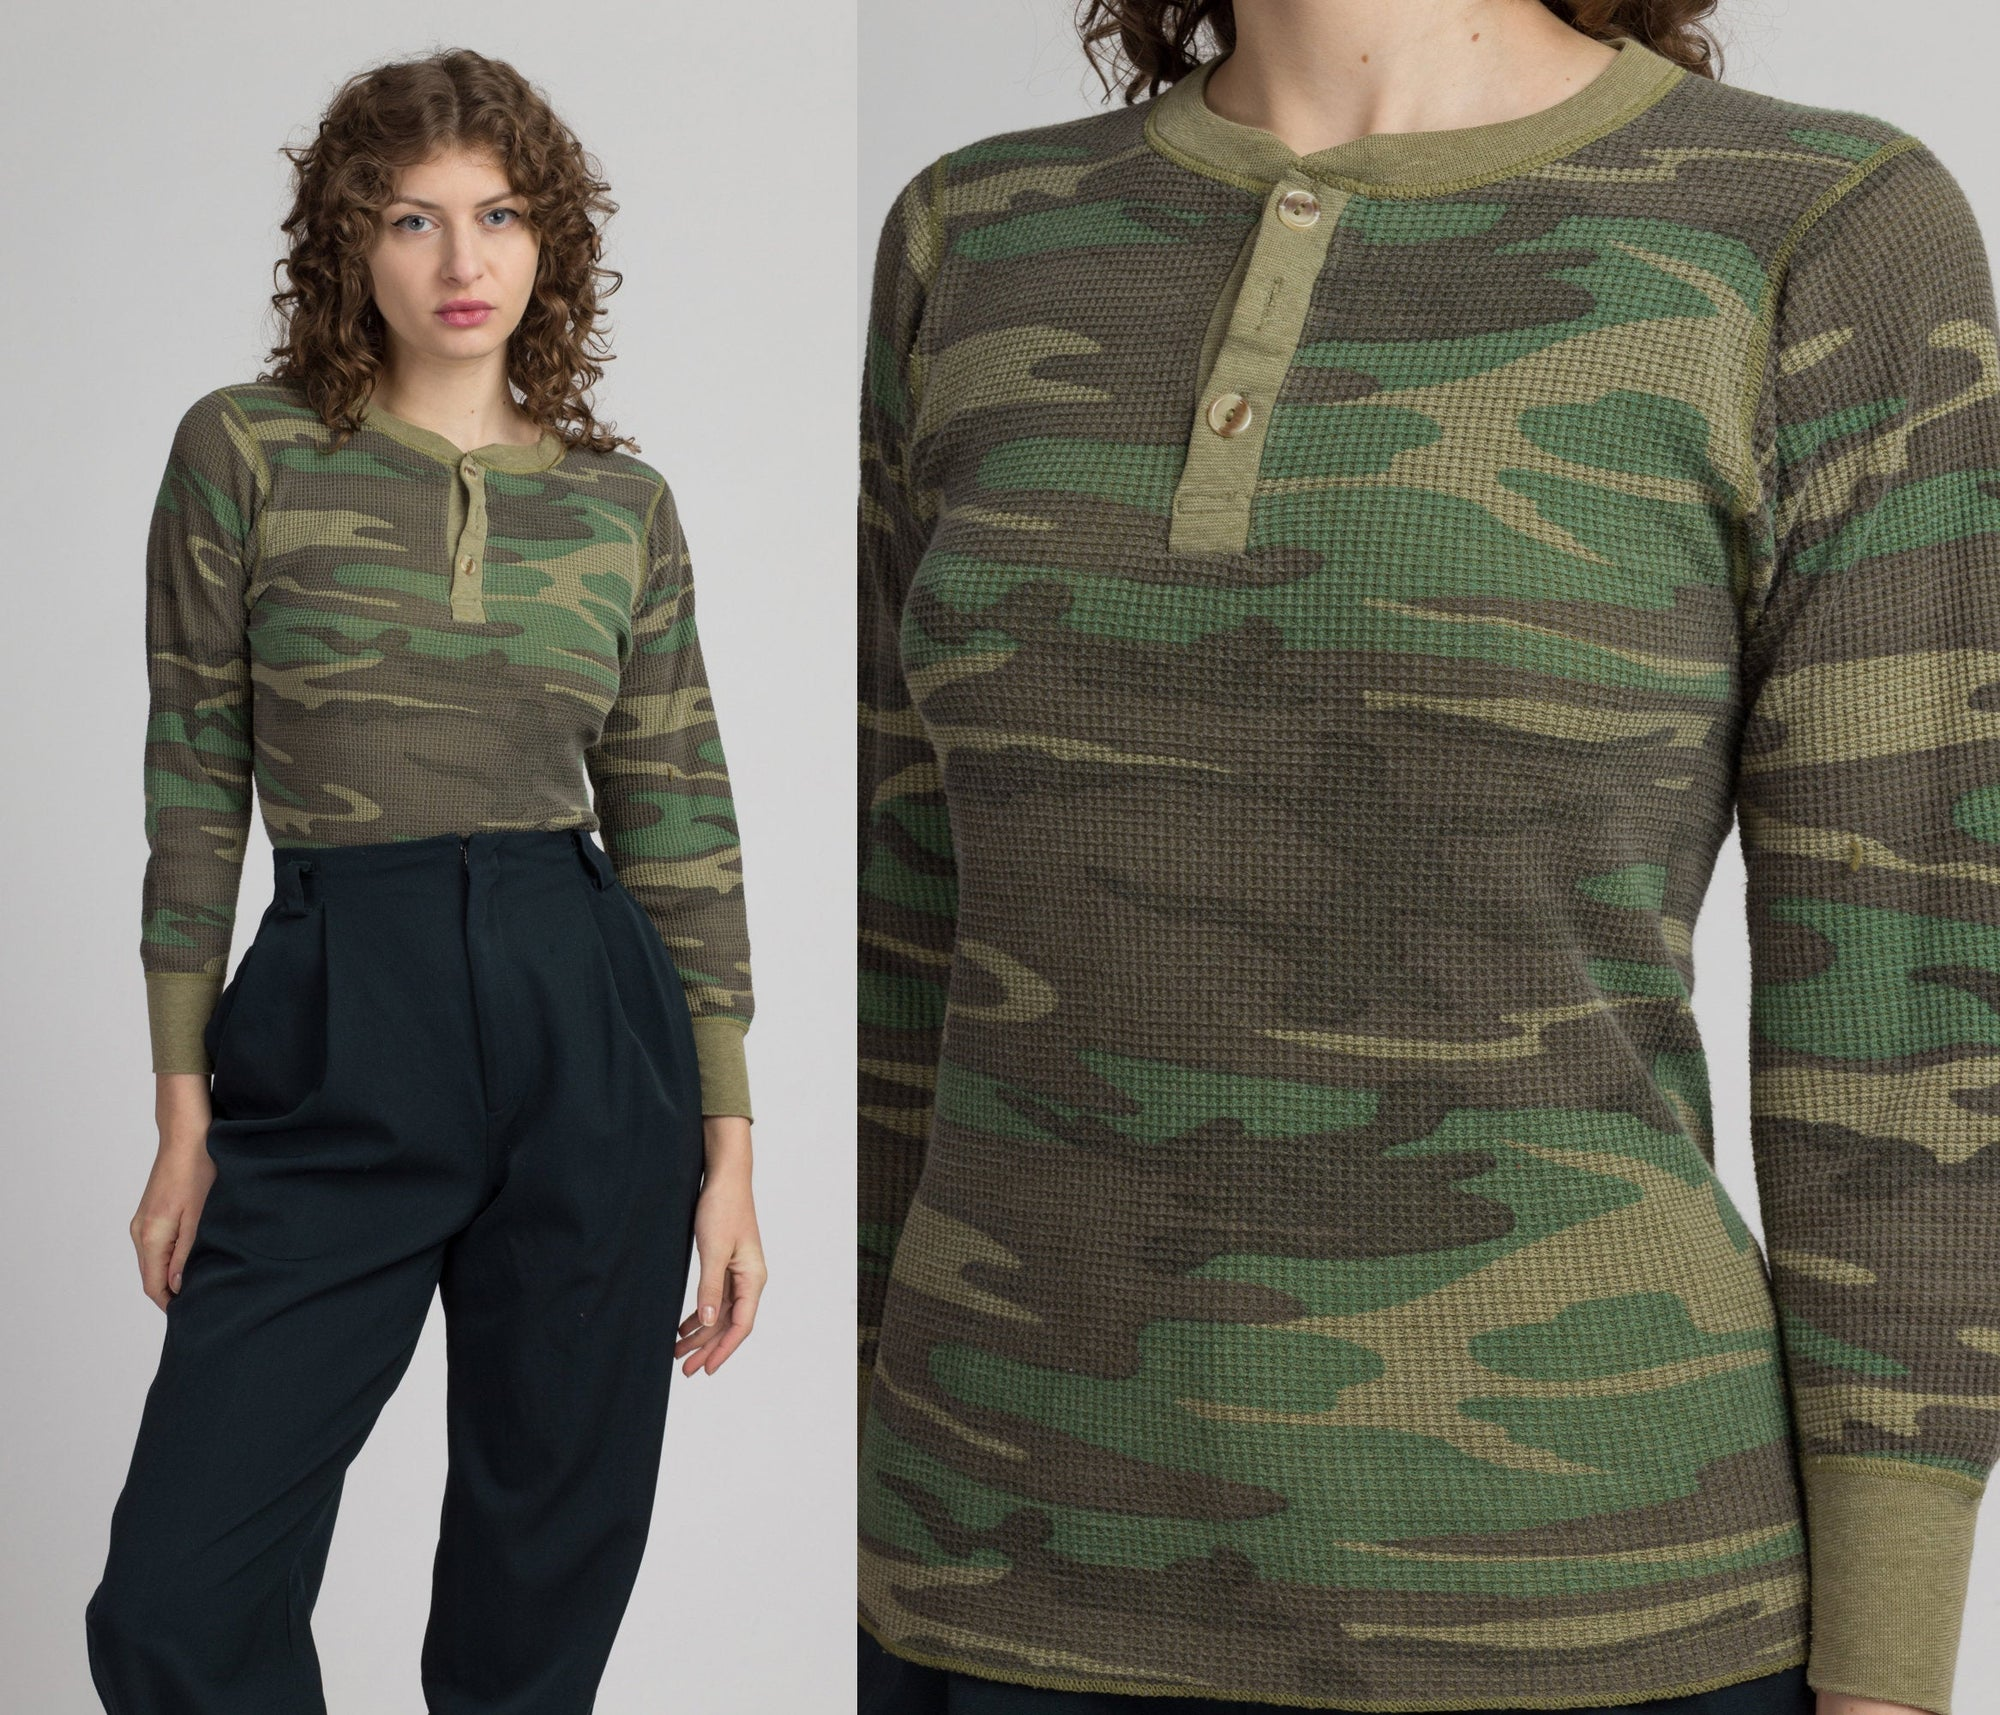 70s 80s Camo Waffle Knit Thermal Shirt - Extra Small | Vintage Unisex Undershirt Long Sleeve Top